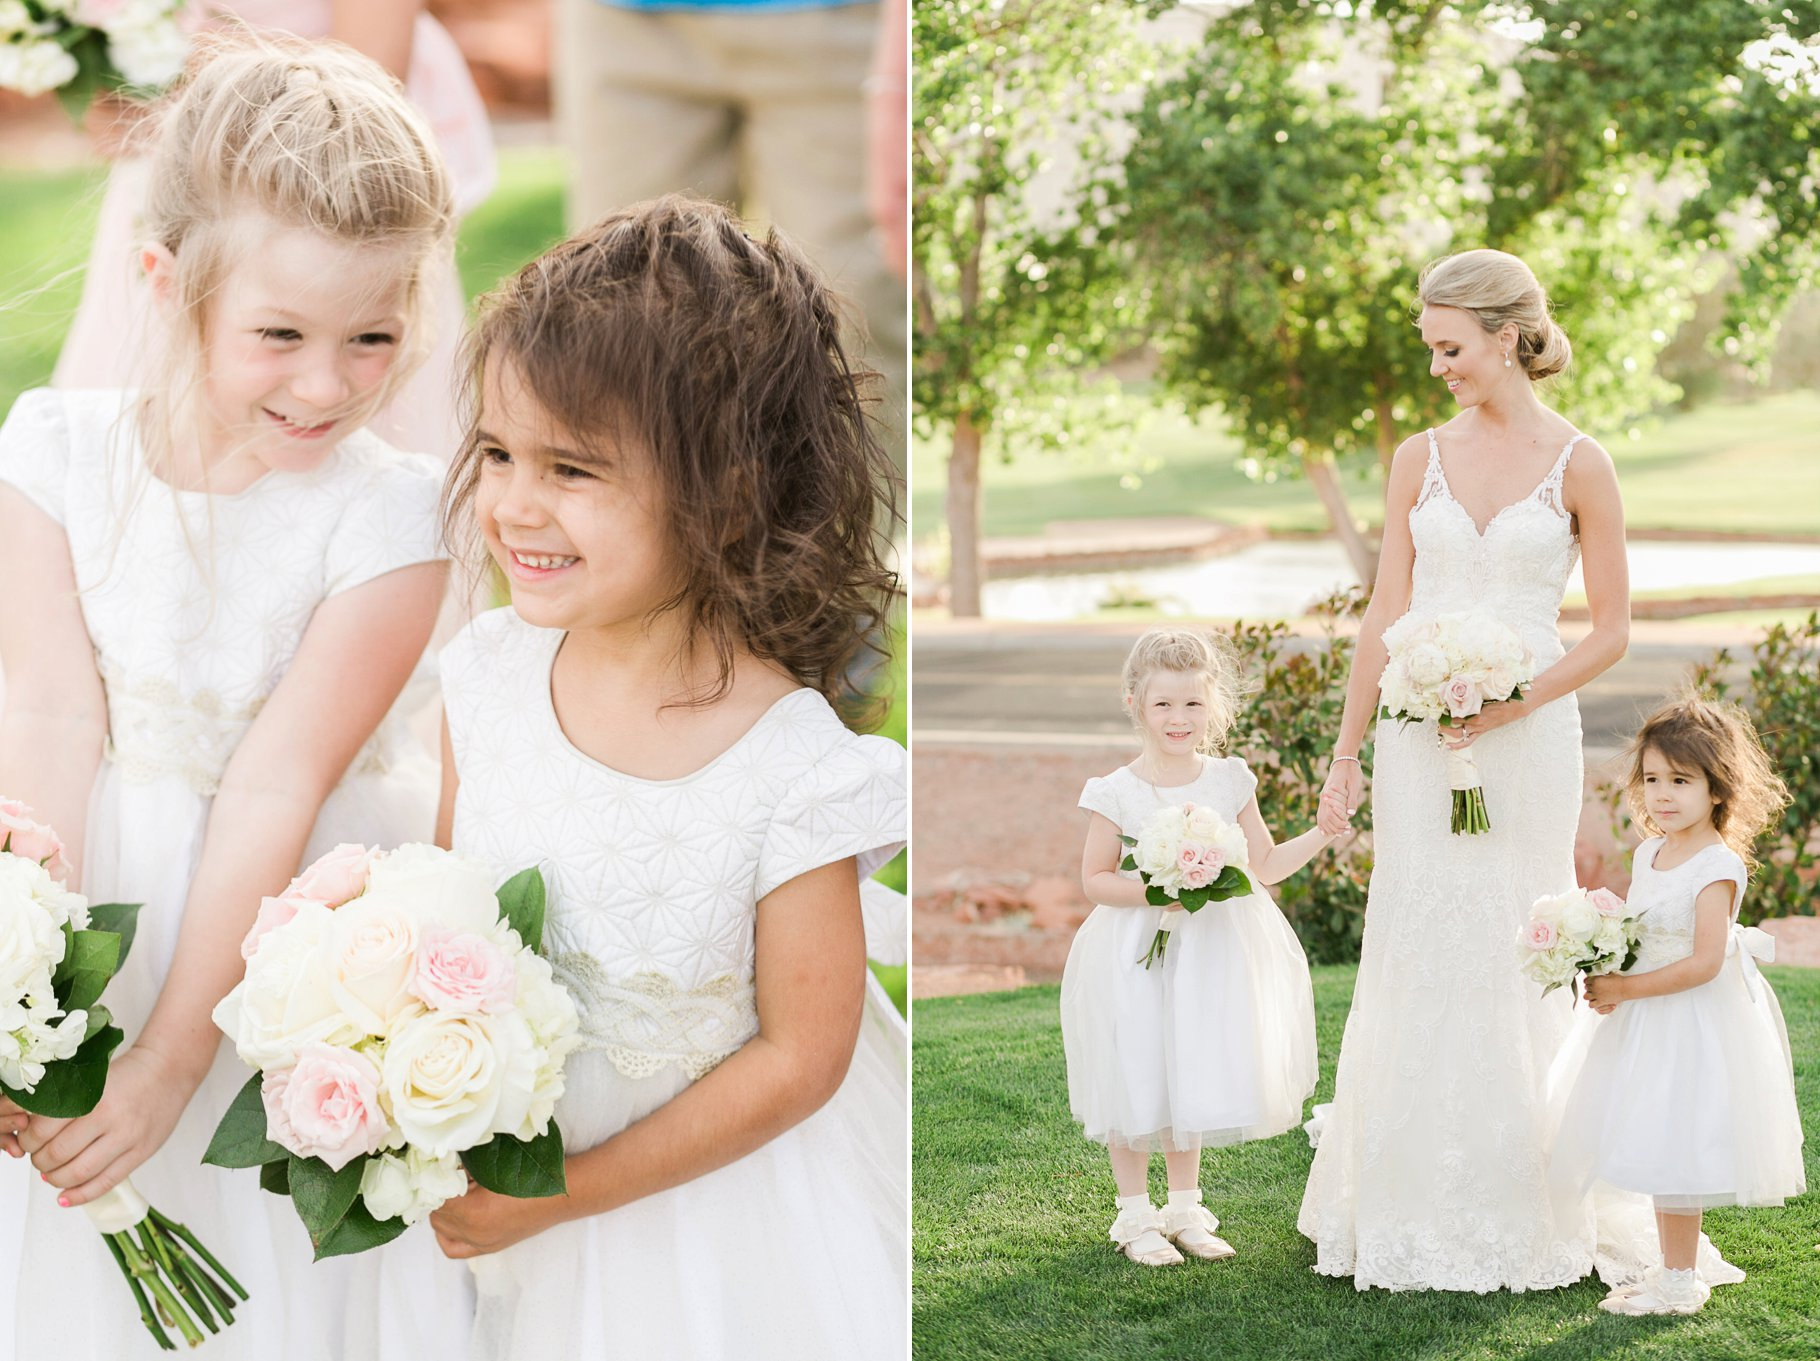 sedona wedding-92_GRETCHEN WAKEMAN PHOTOGRAPHY.jpg